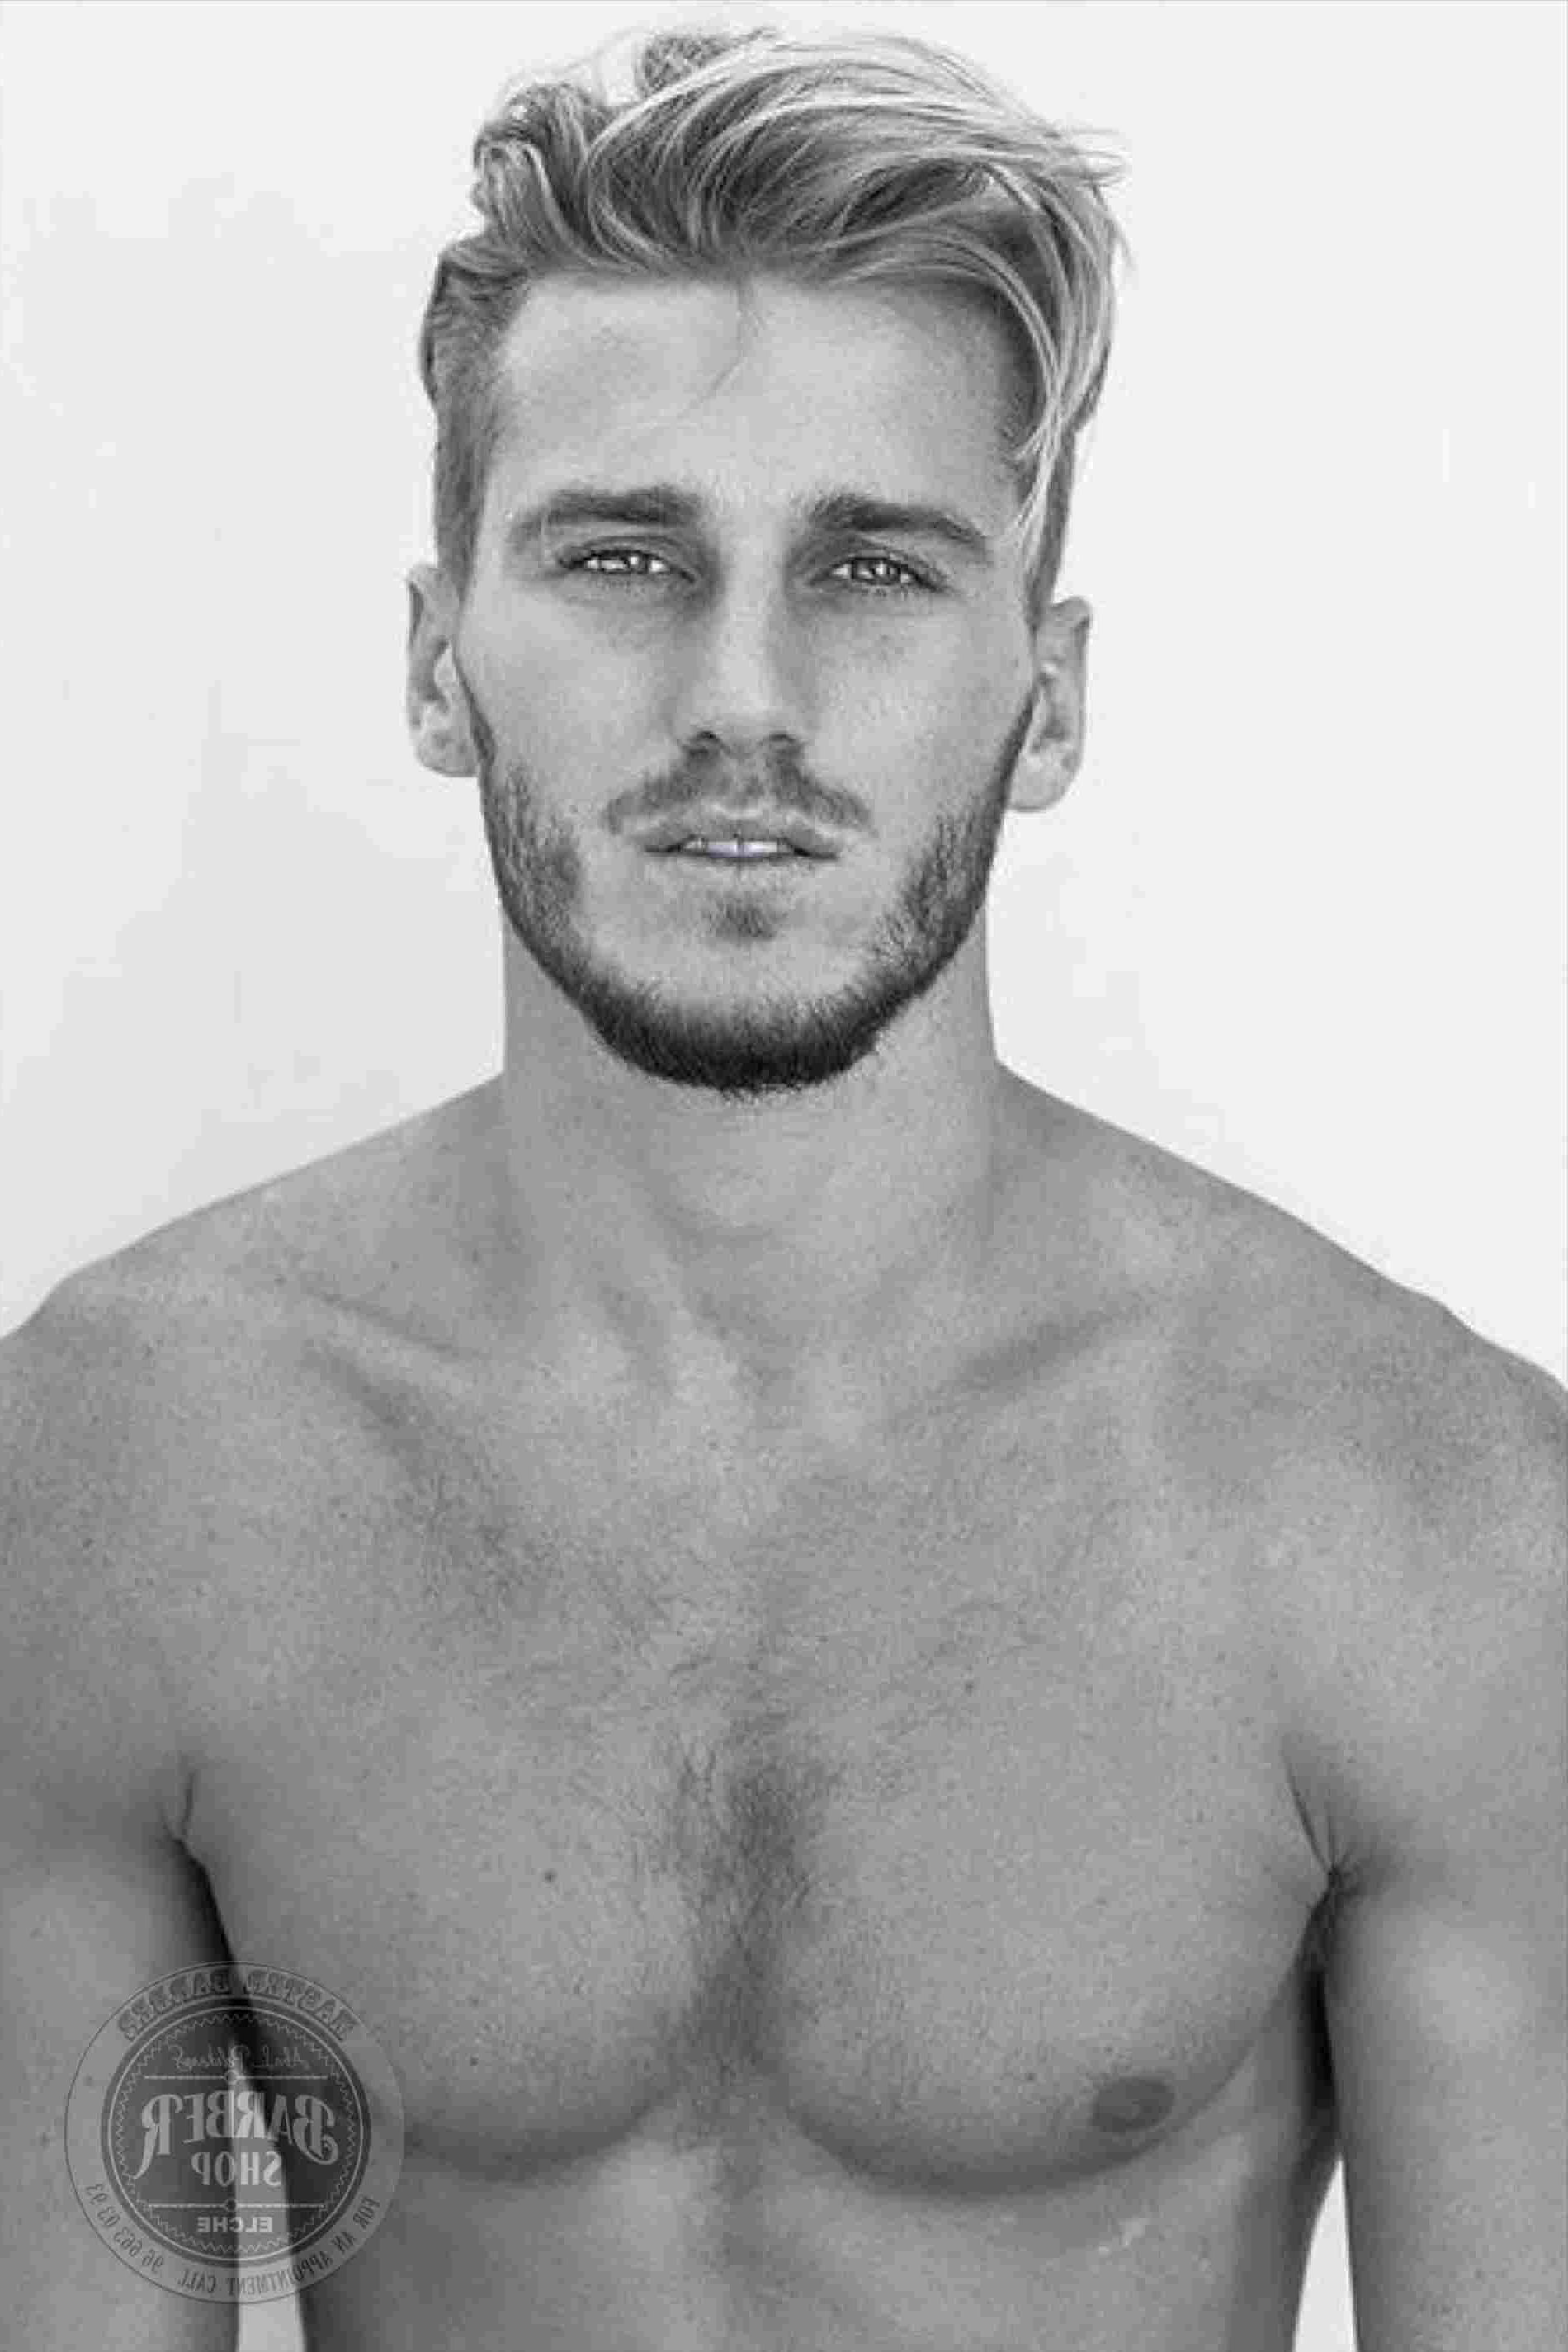 Rhpinterestcom Styles Mens Short Haircuts For Thin Straight Hair Within Short Haircuts That Make You Look Younger (View 25 of 25)